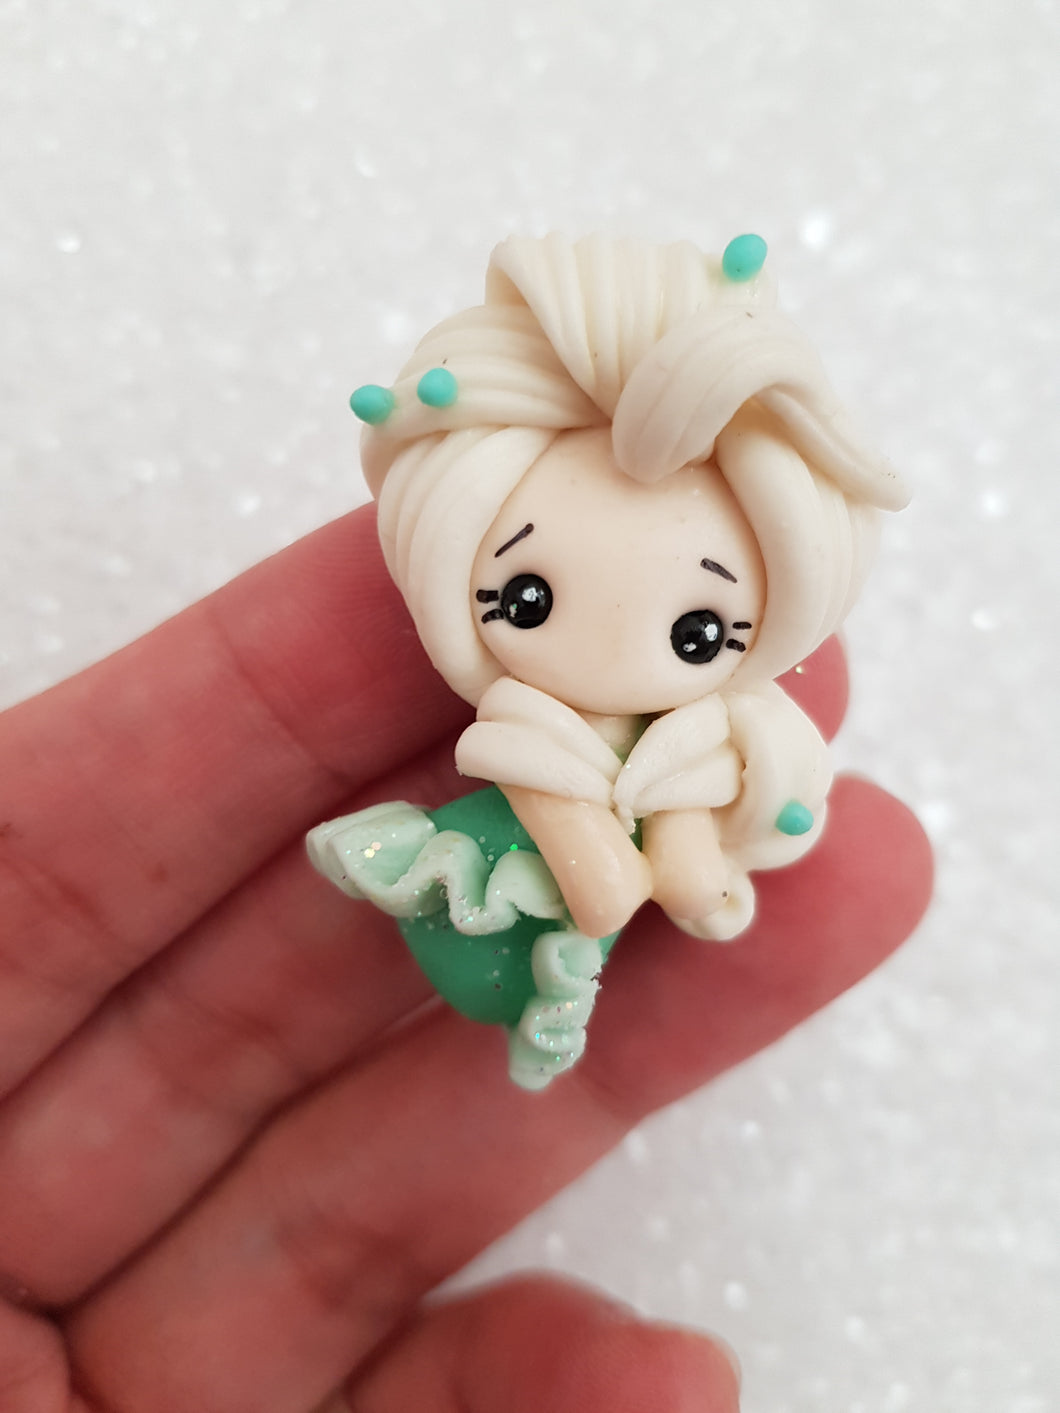 Clay Charm Embellishment - White Hair Goddess - Princess - Crafty Mood